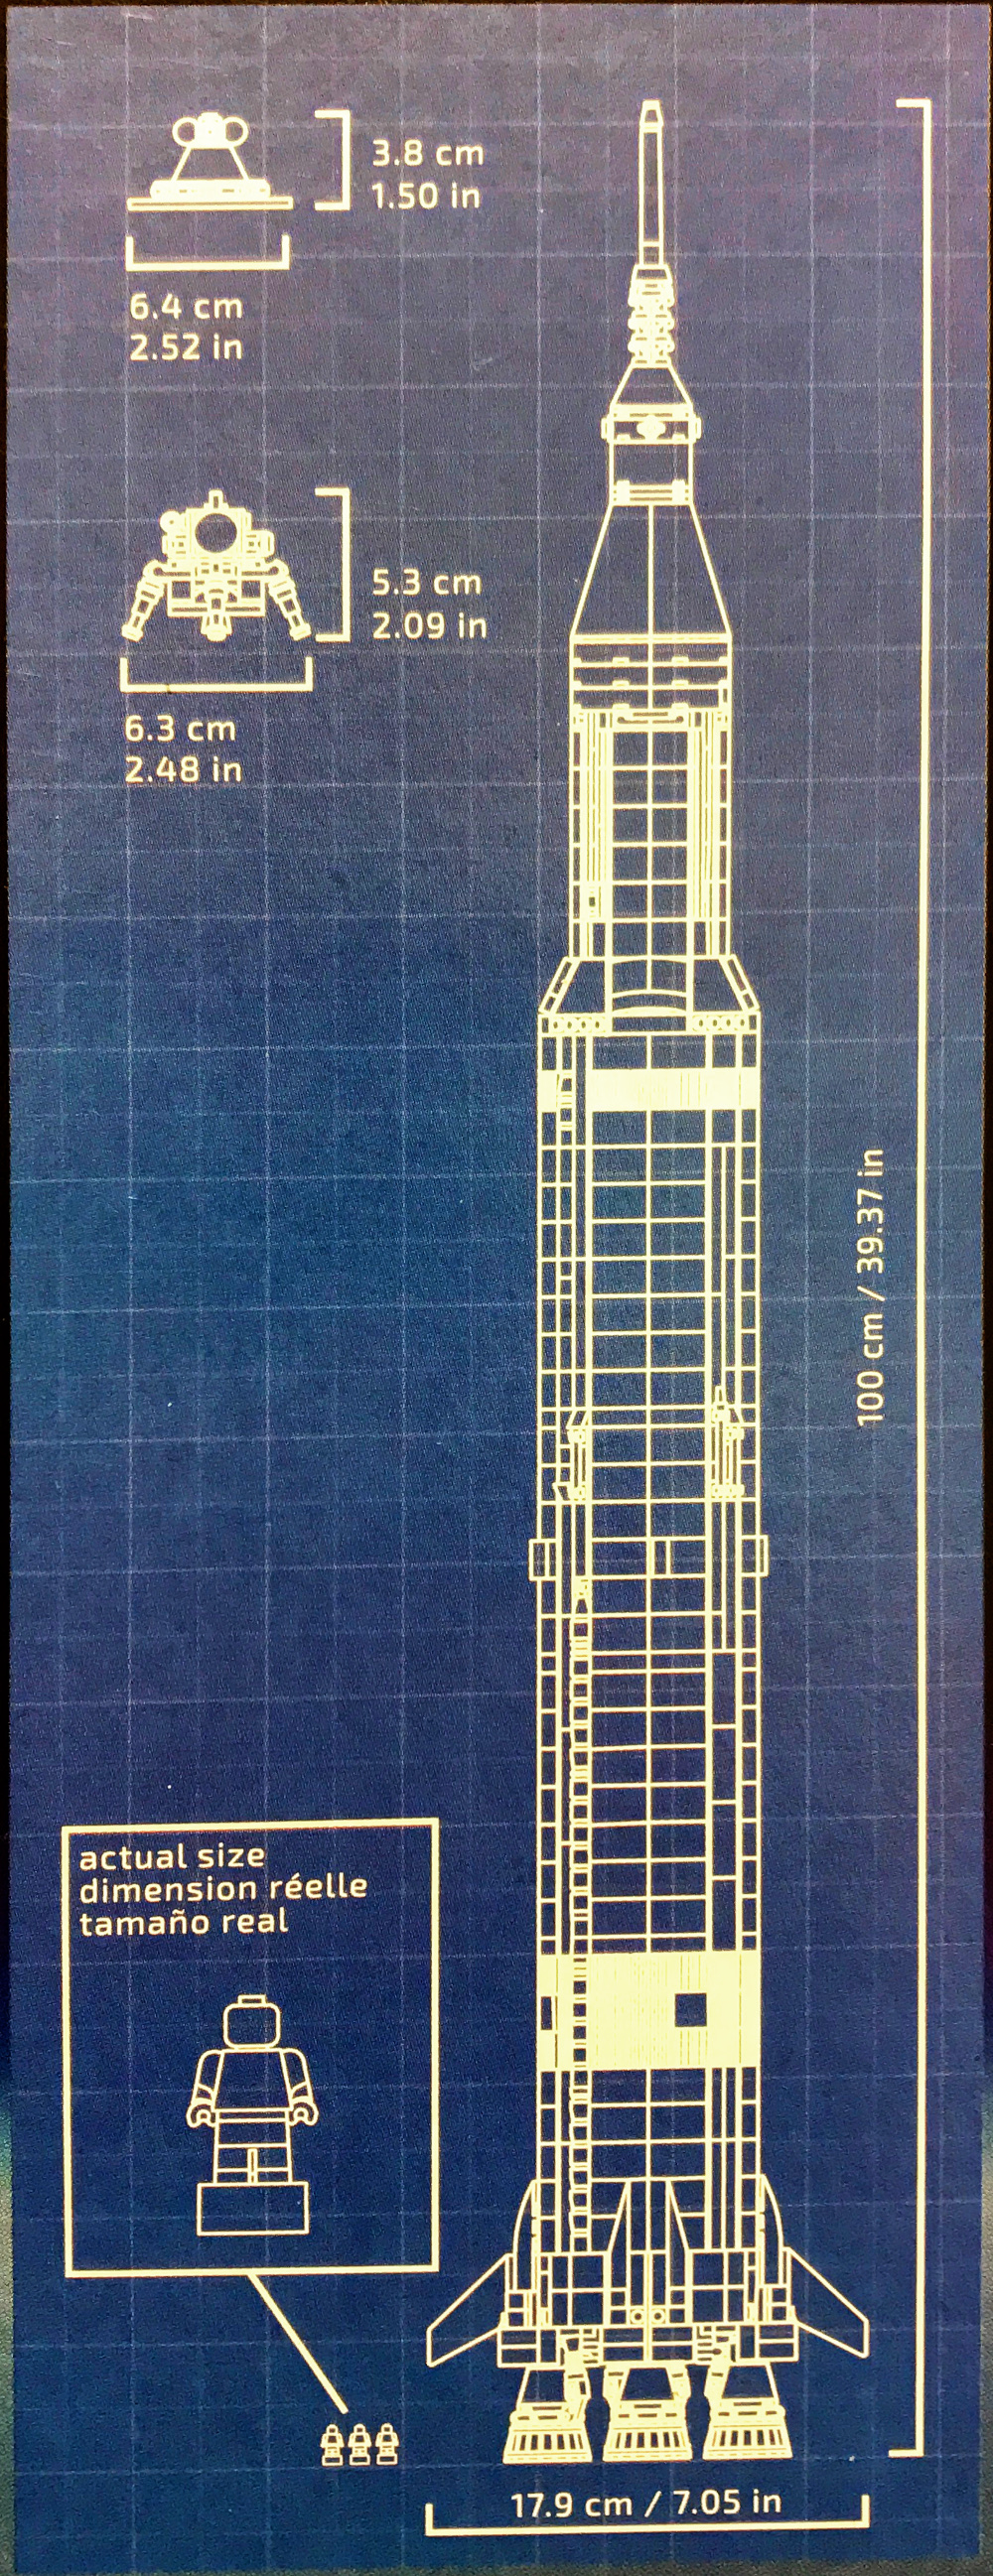 hight resolution of here s the scale diagram from the front of the box the fully assembled rocket is 1 meter tall almost to the millimeter